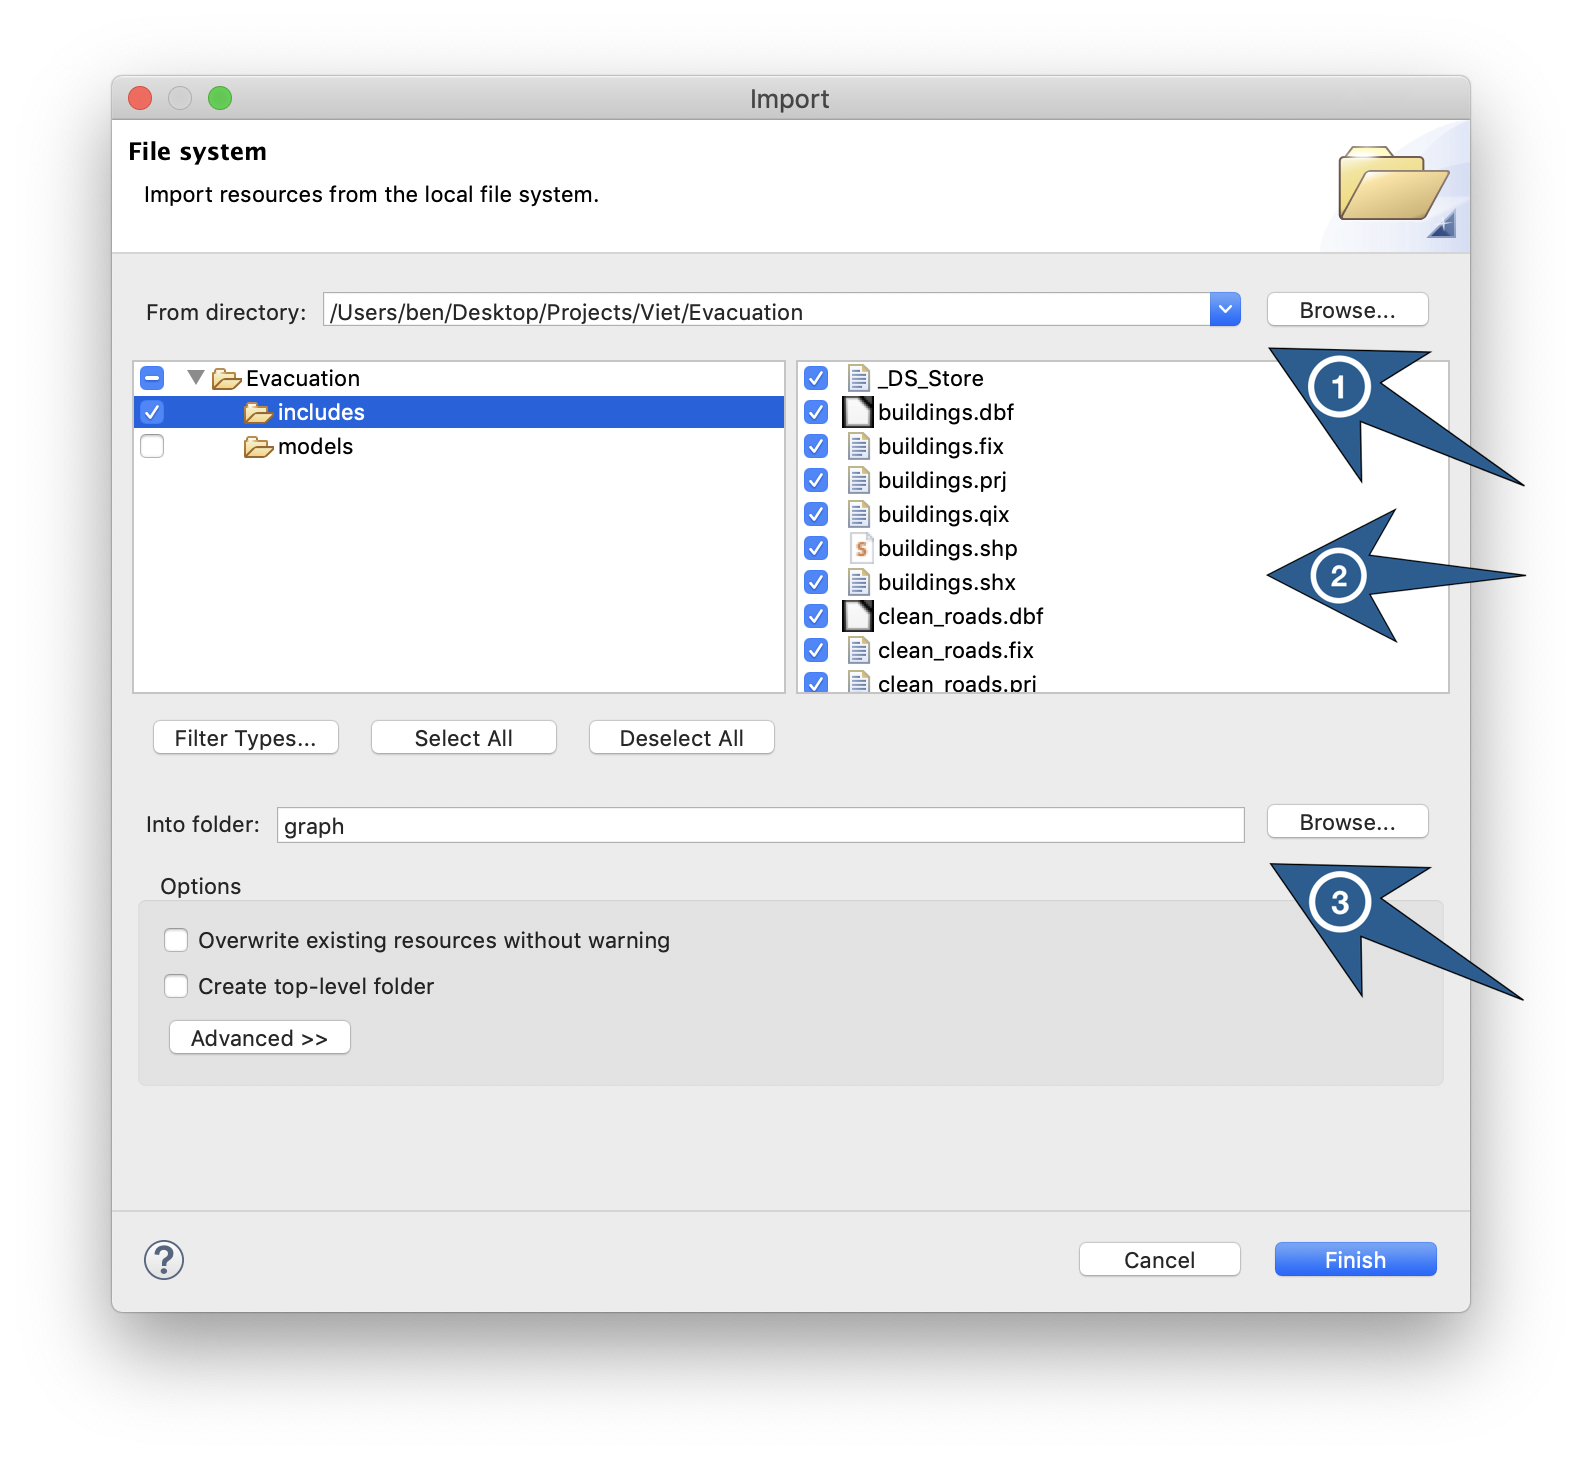 Dialog box to import external files into an existing project of the workspace.